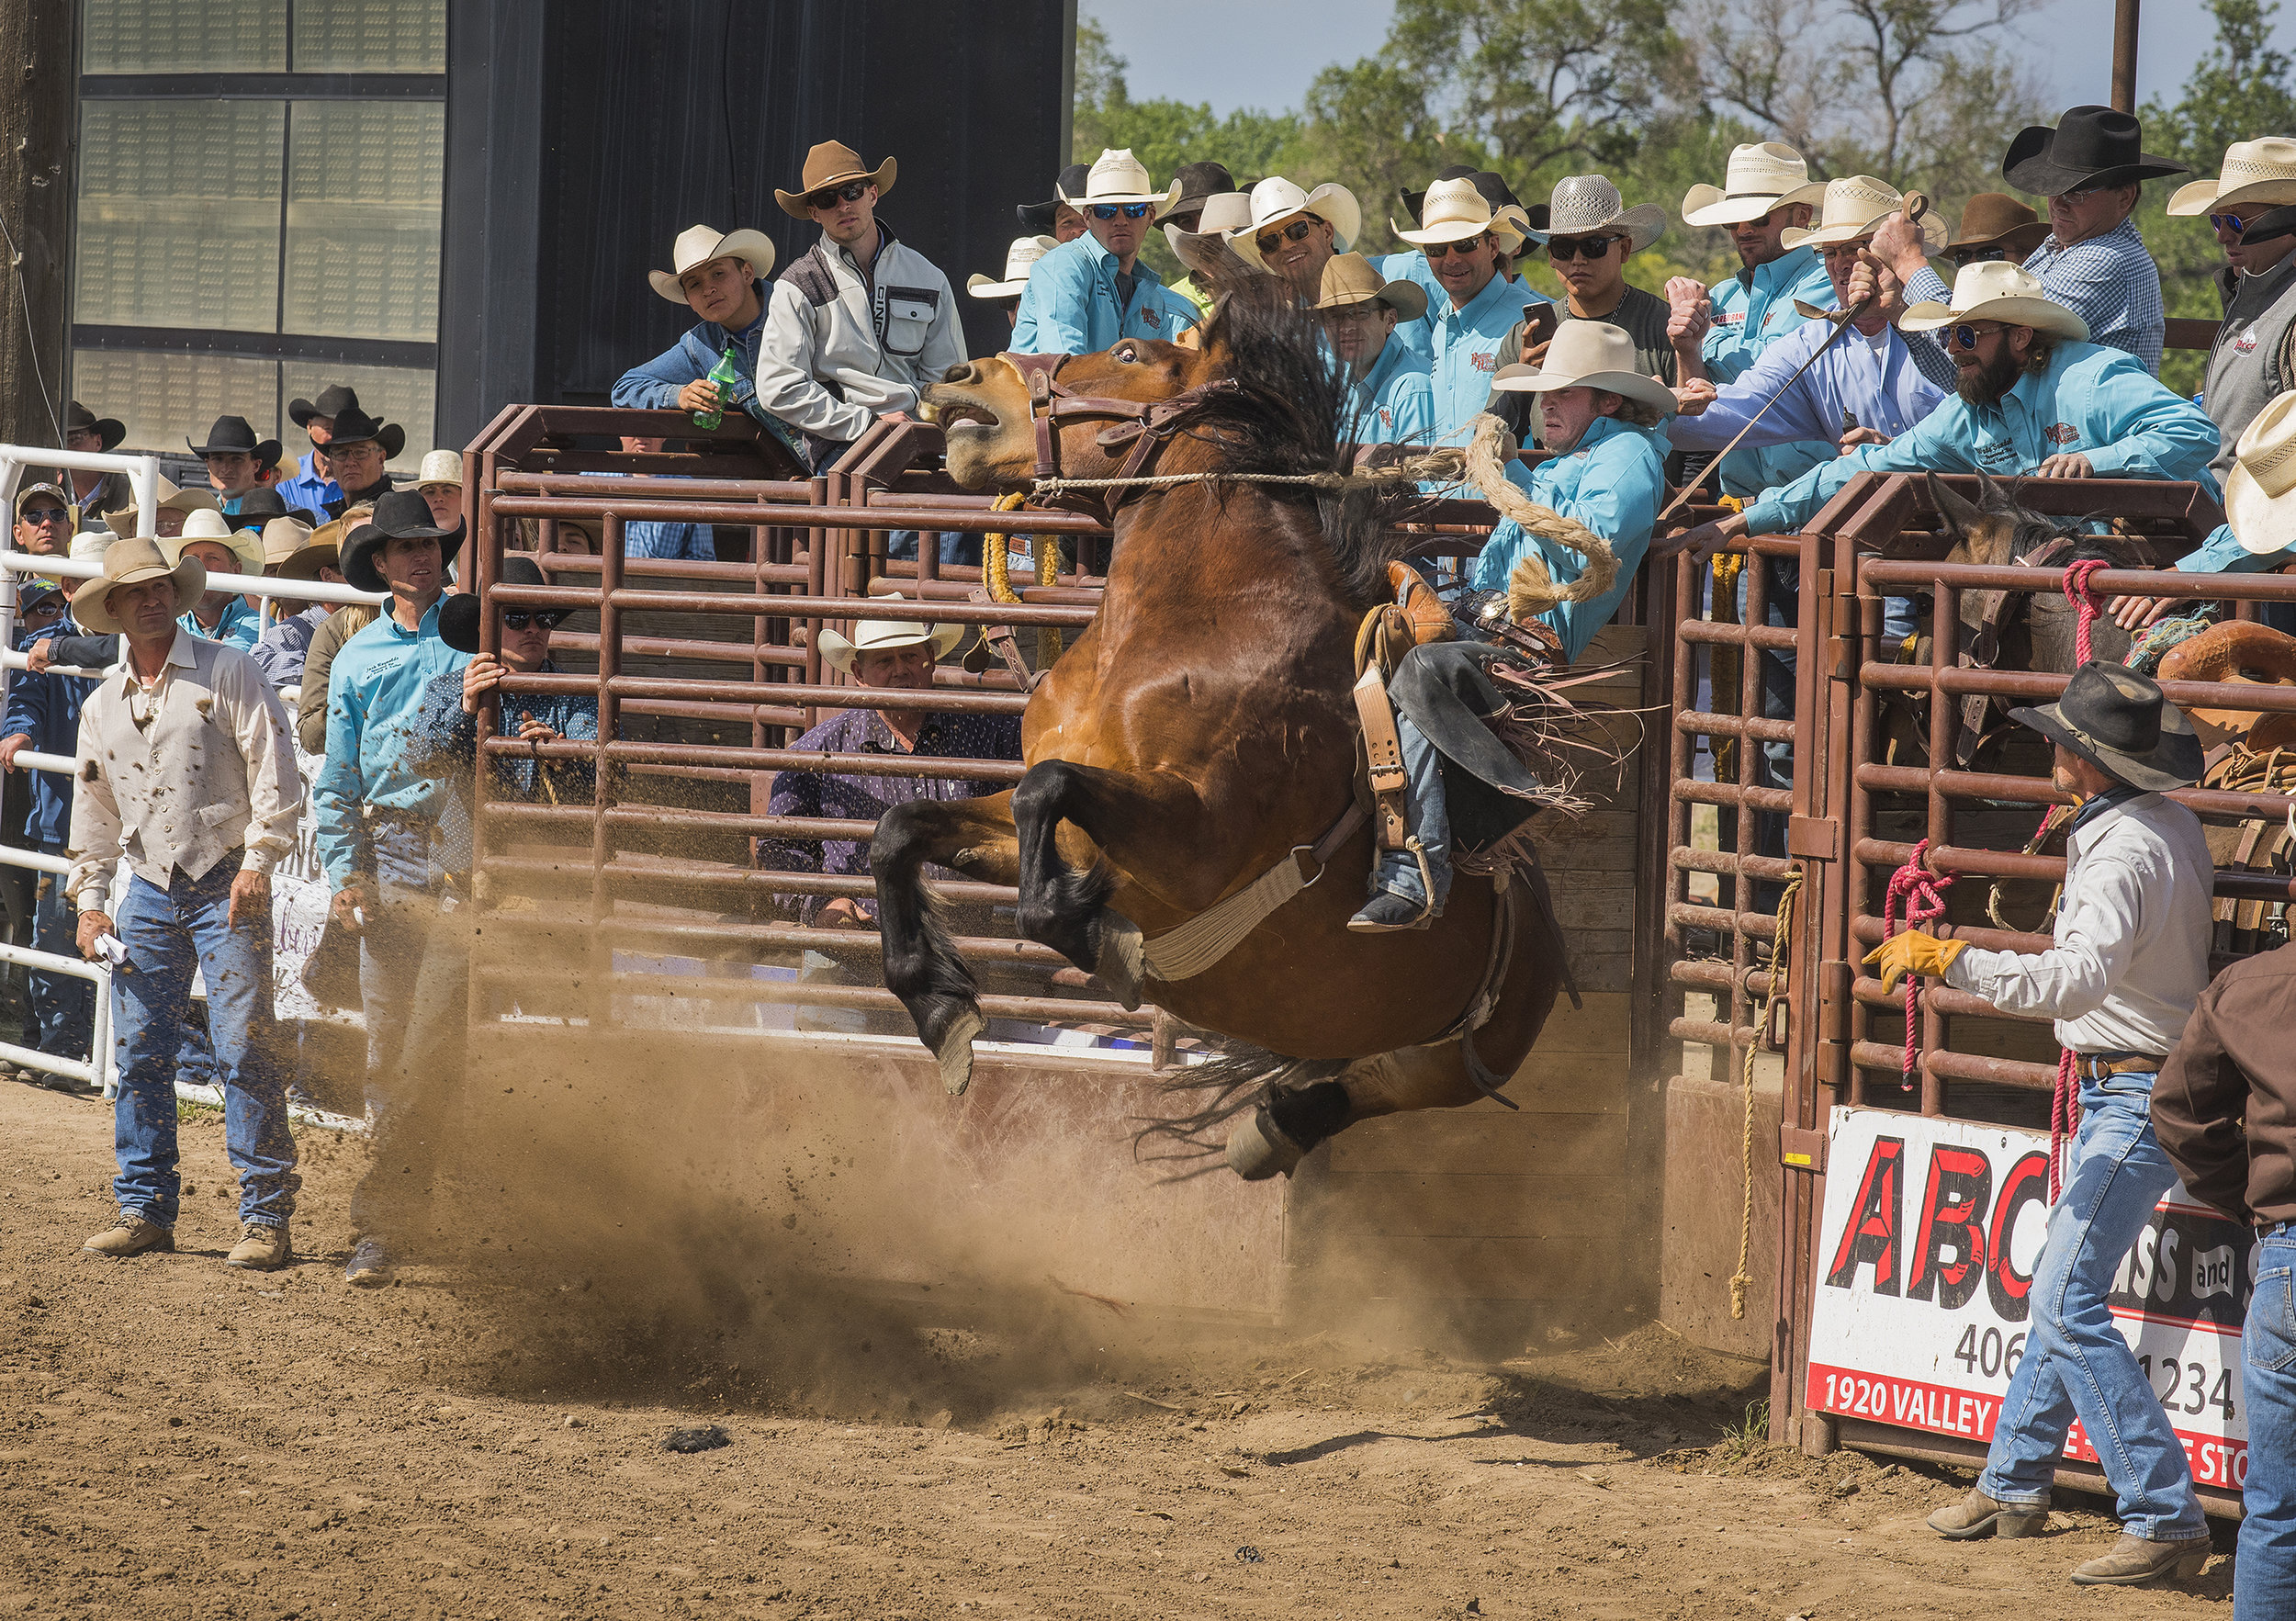 Cort Scheer guides his horse 983 Good Times out of the chute during the Long Go Bronco Riding event at the annual Bucking Horse Sale in Mile City, Montana.Photo by Greg Bos  21 May 2017